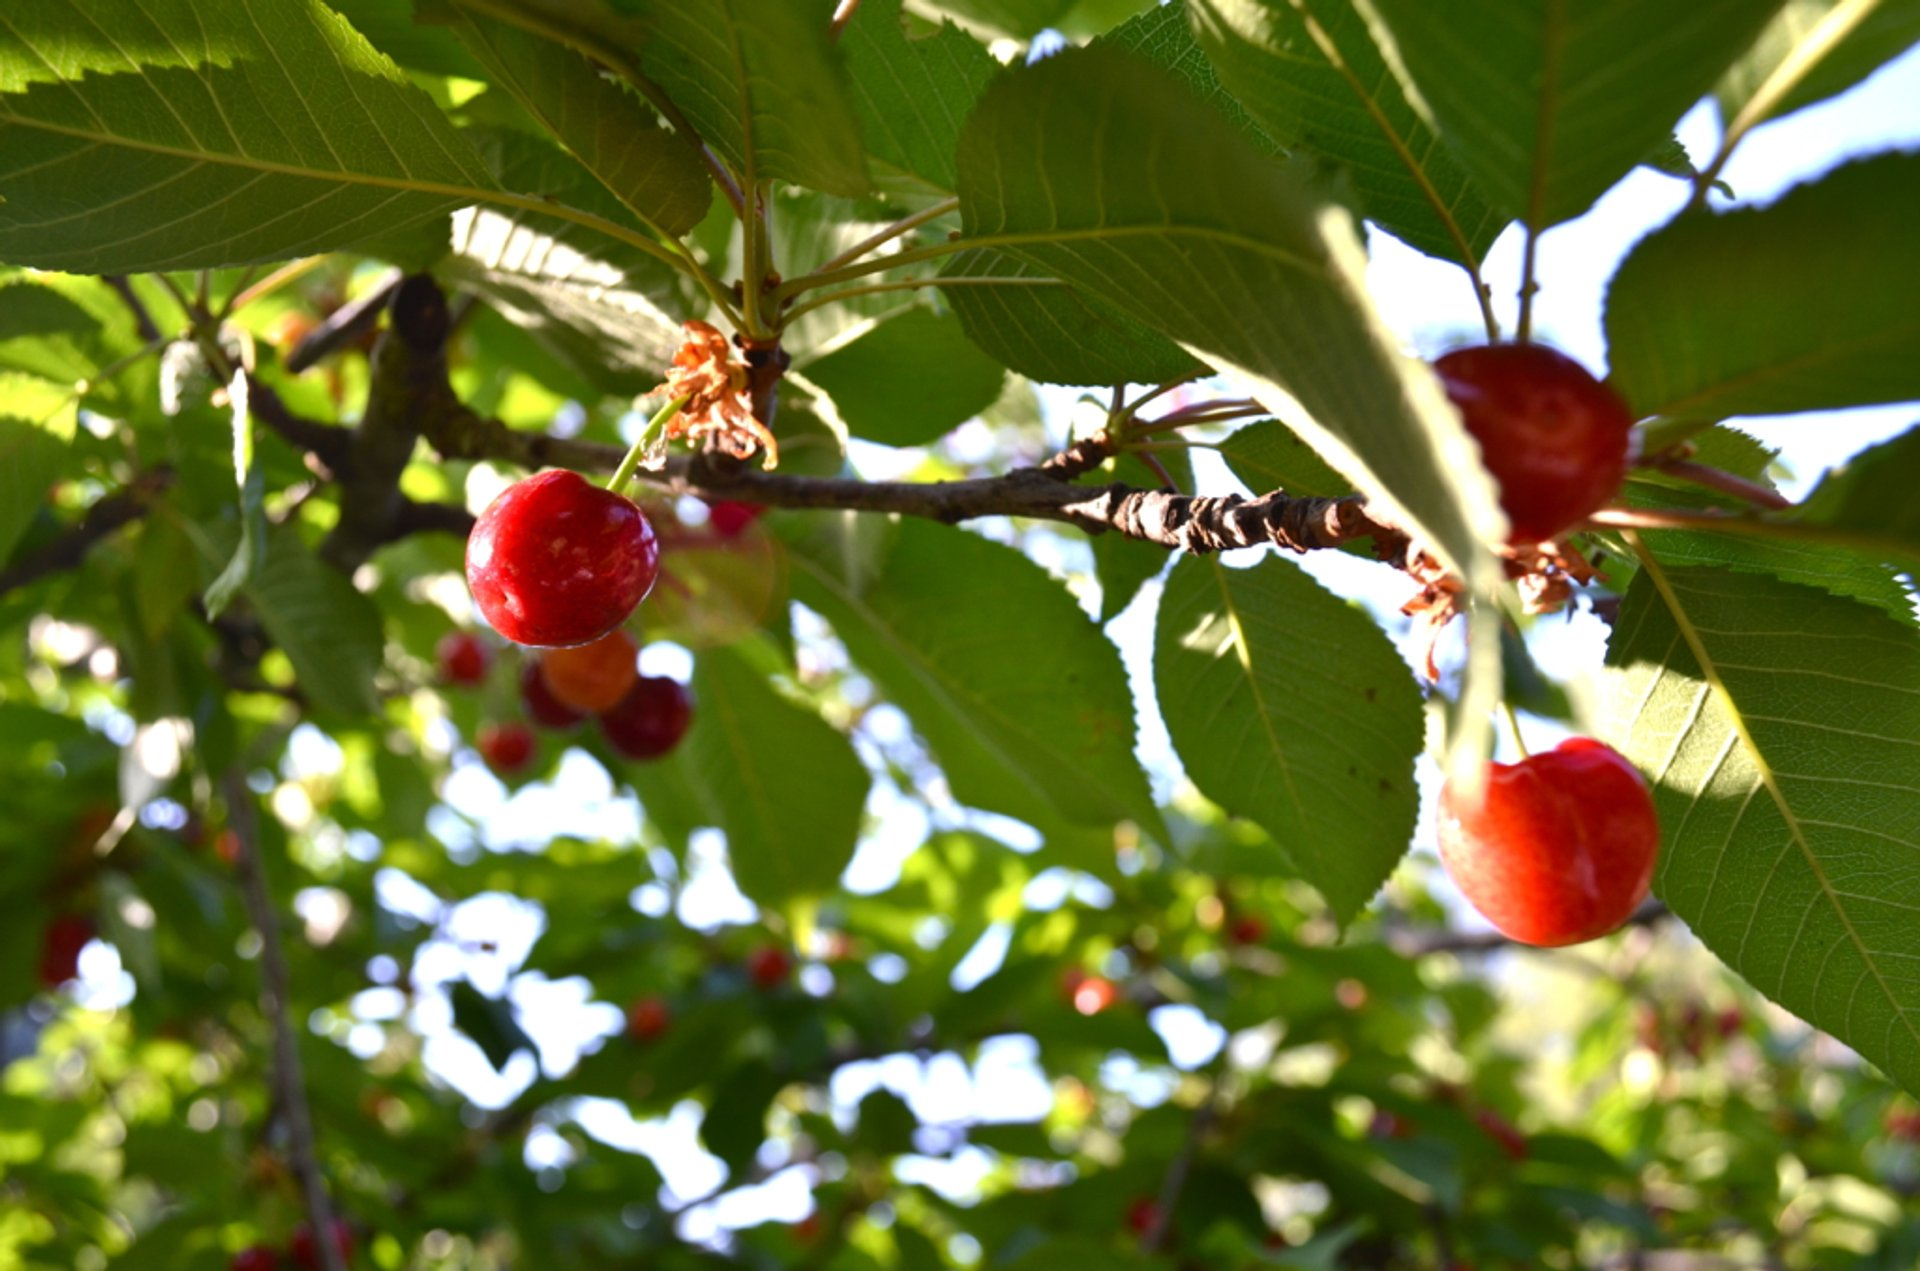 Cherries in Cyprus 2019 - Best Time